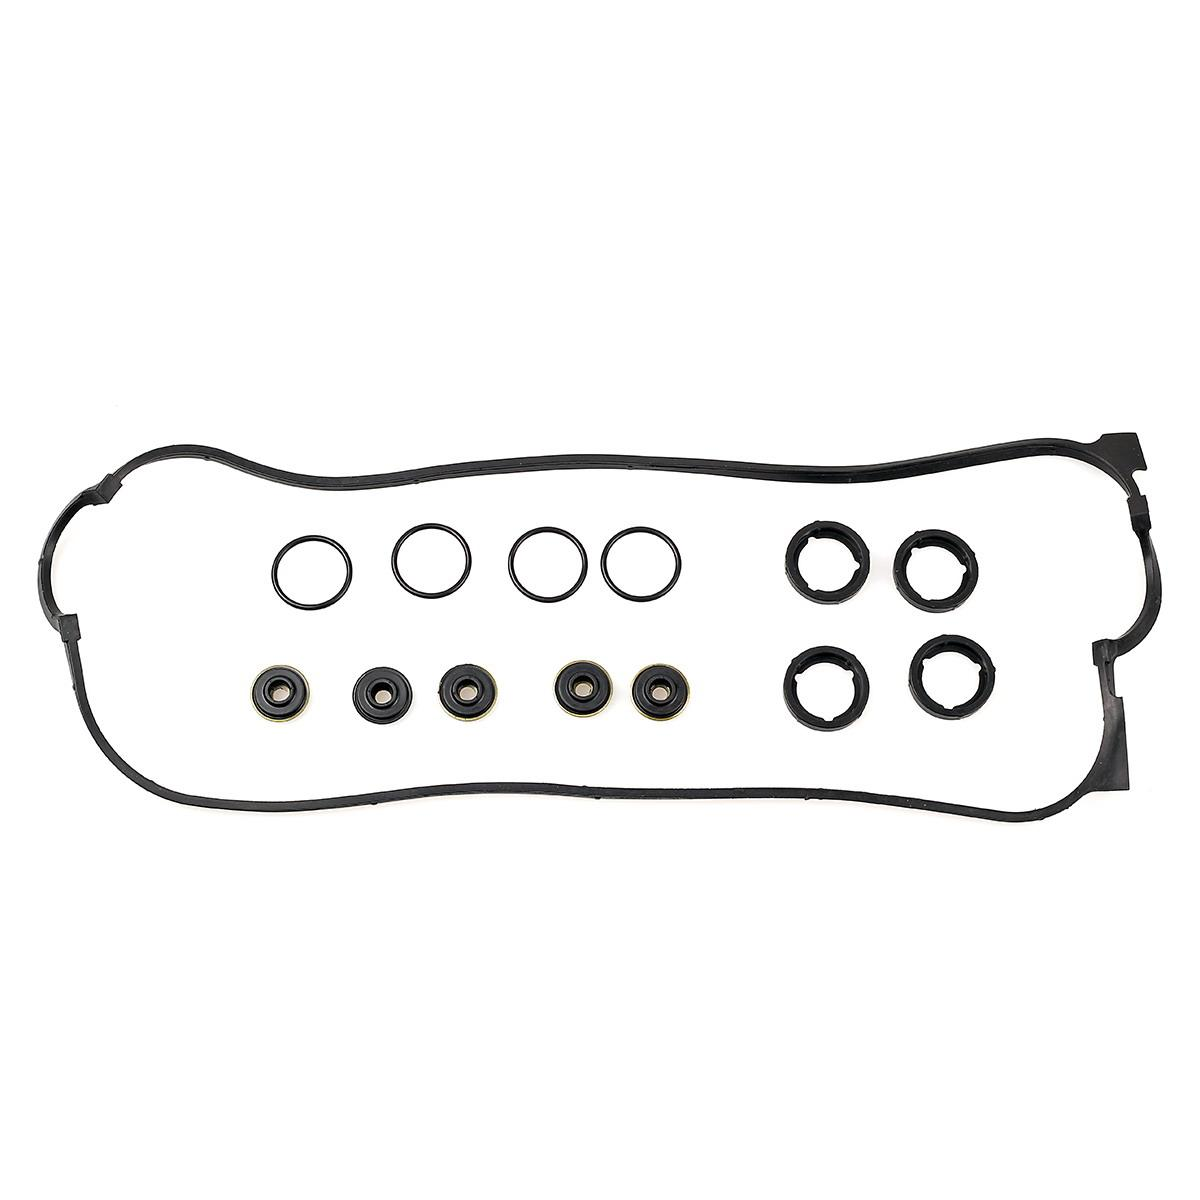 engine valve cover gasket set fits honda accord dx lx 2 2l f22a1 oe repl